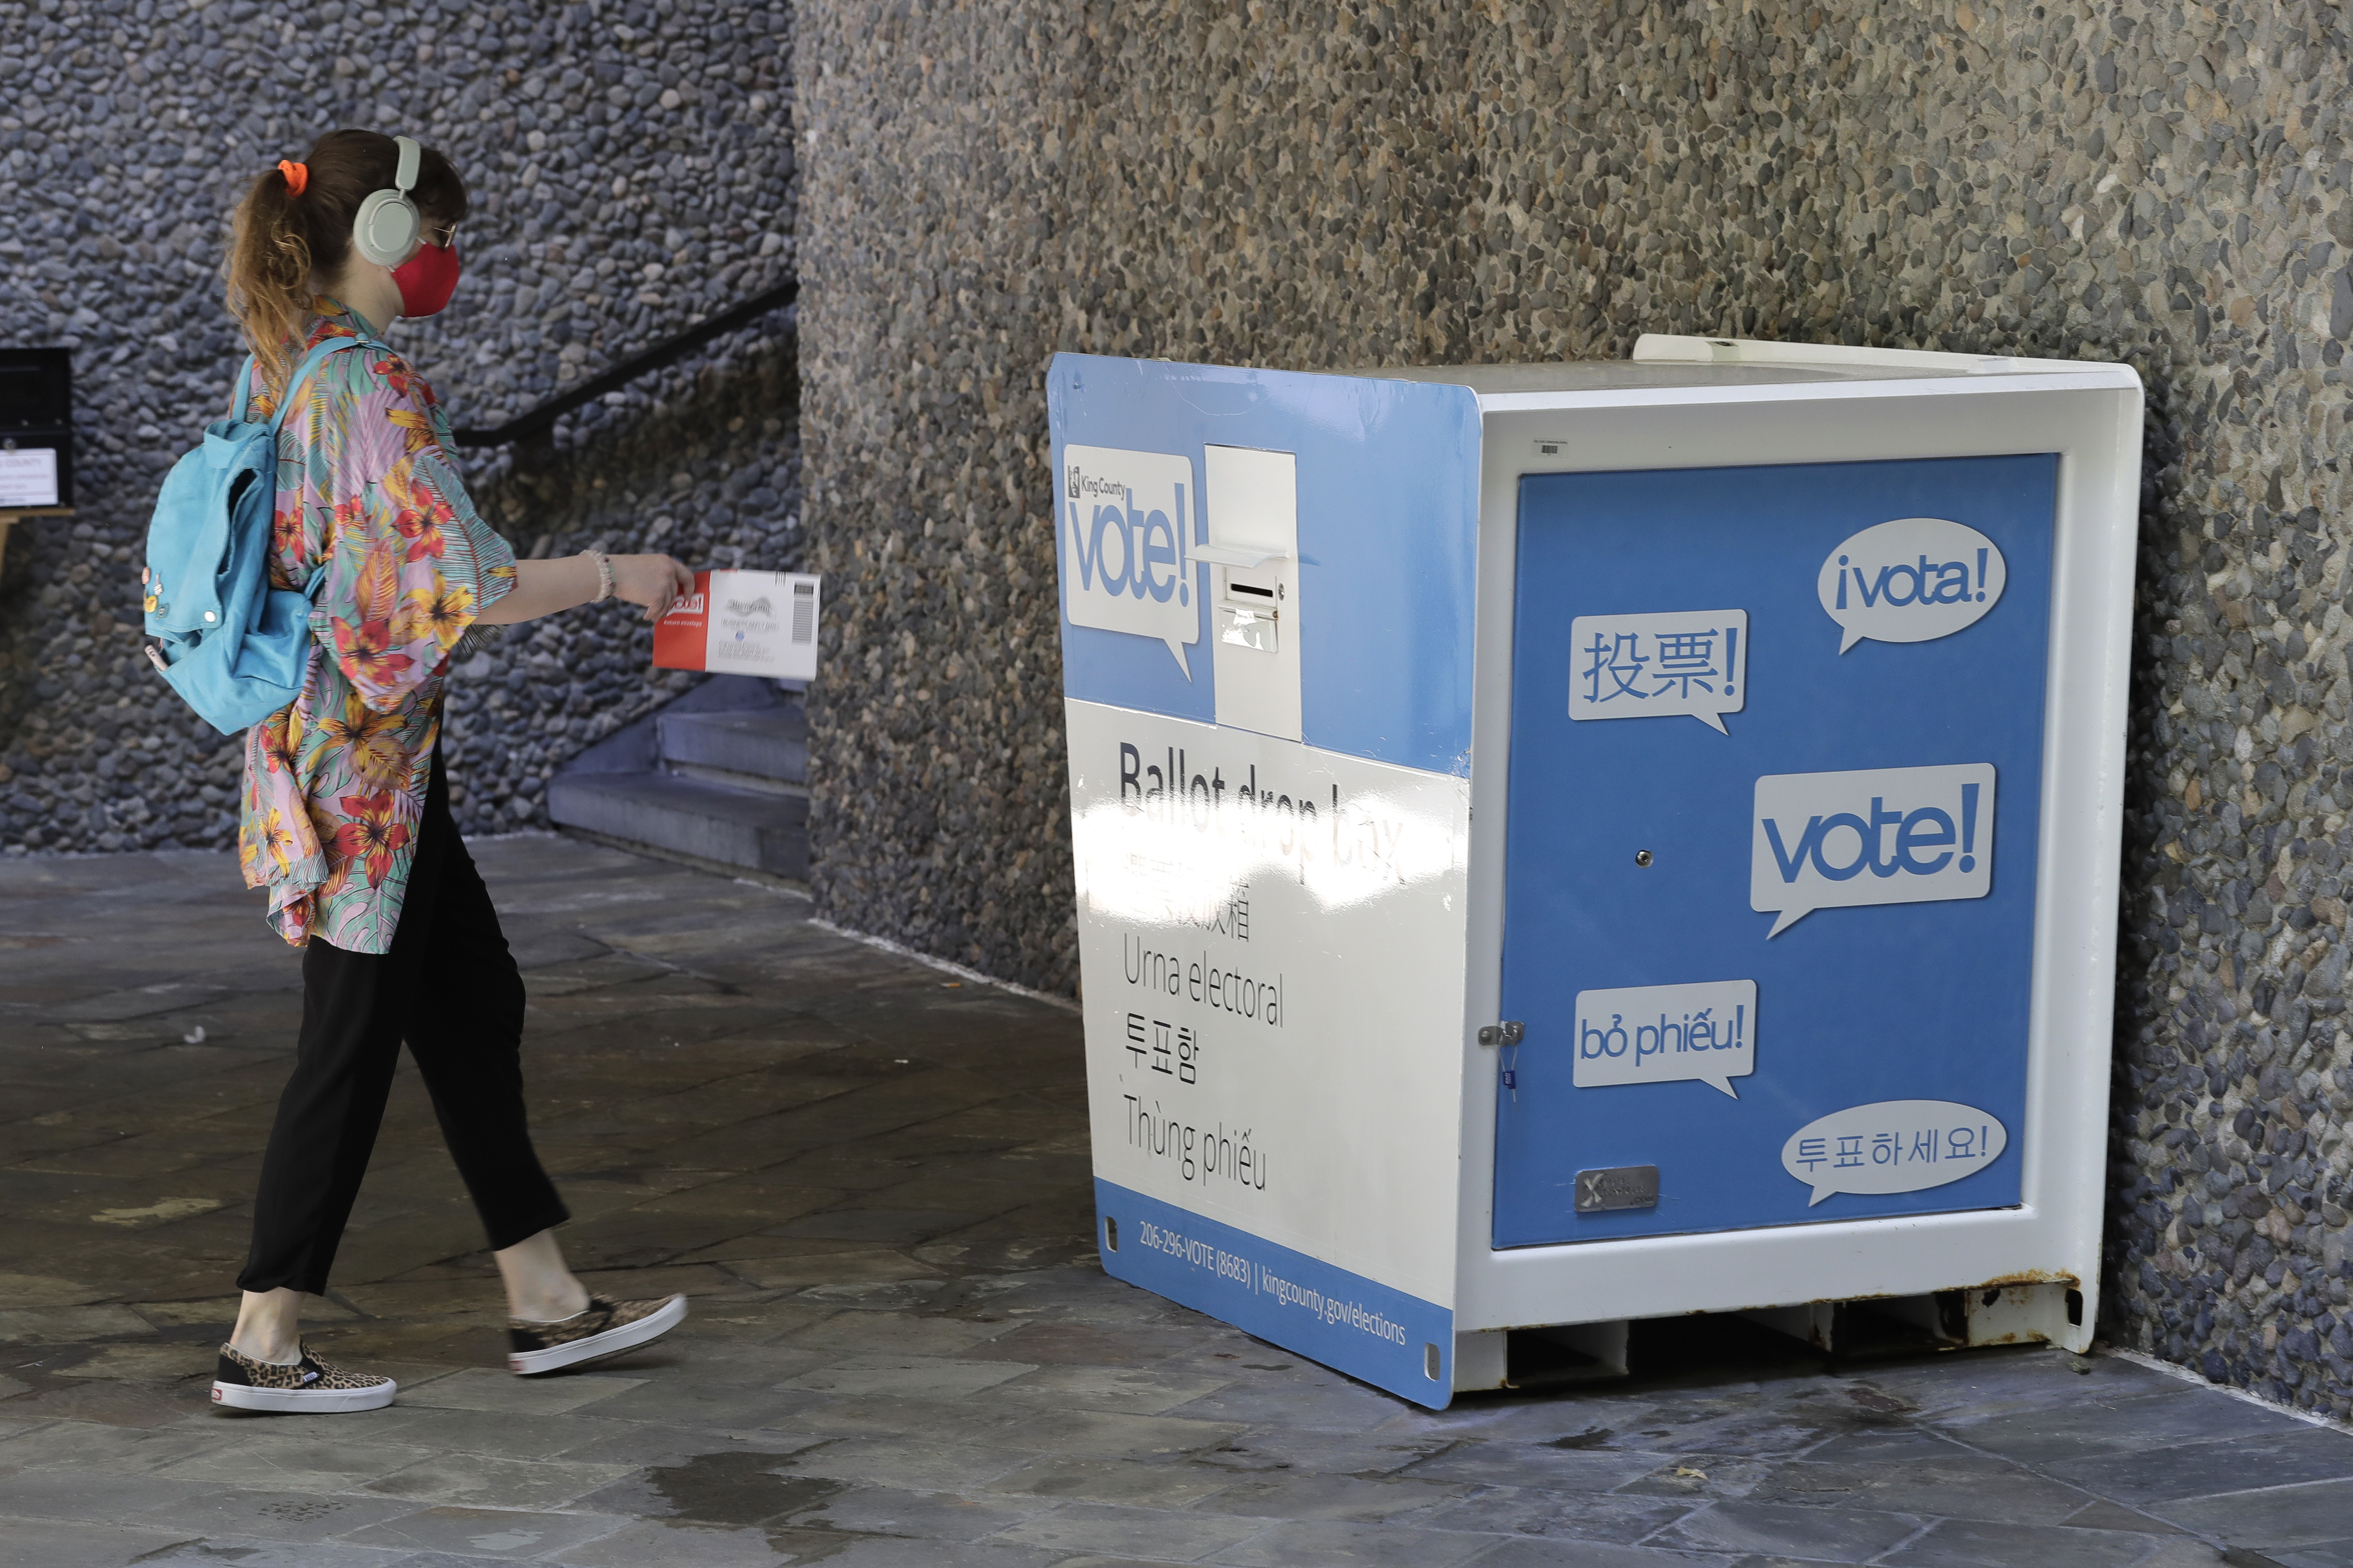 A person drops off a ballot for Washington state's primary election, Tuesday, Aug. 4, 2020, at a collection box at the King County Administration Building in Seattle.